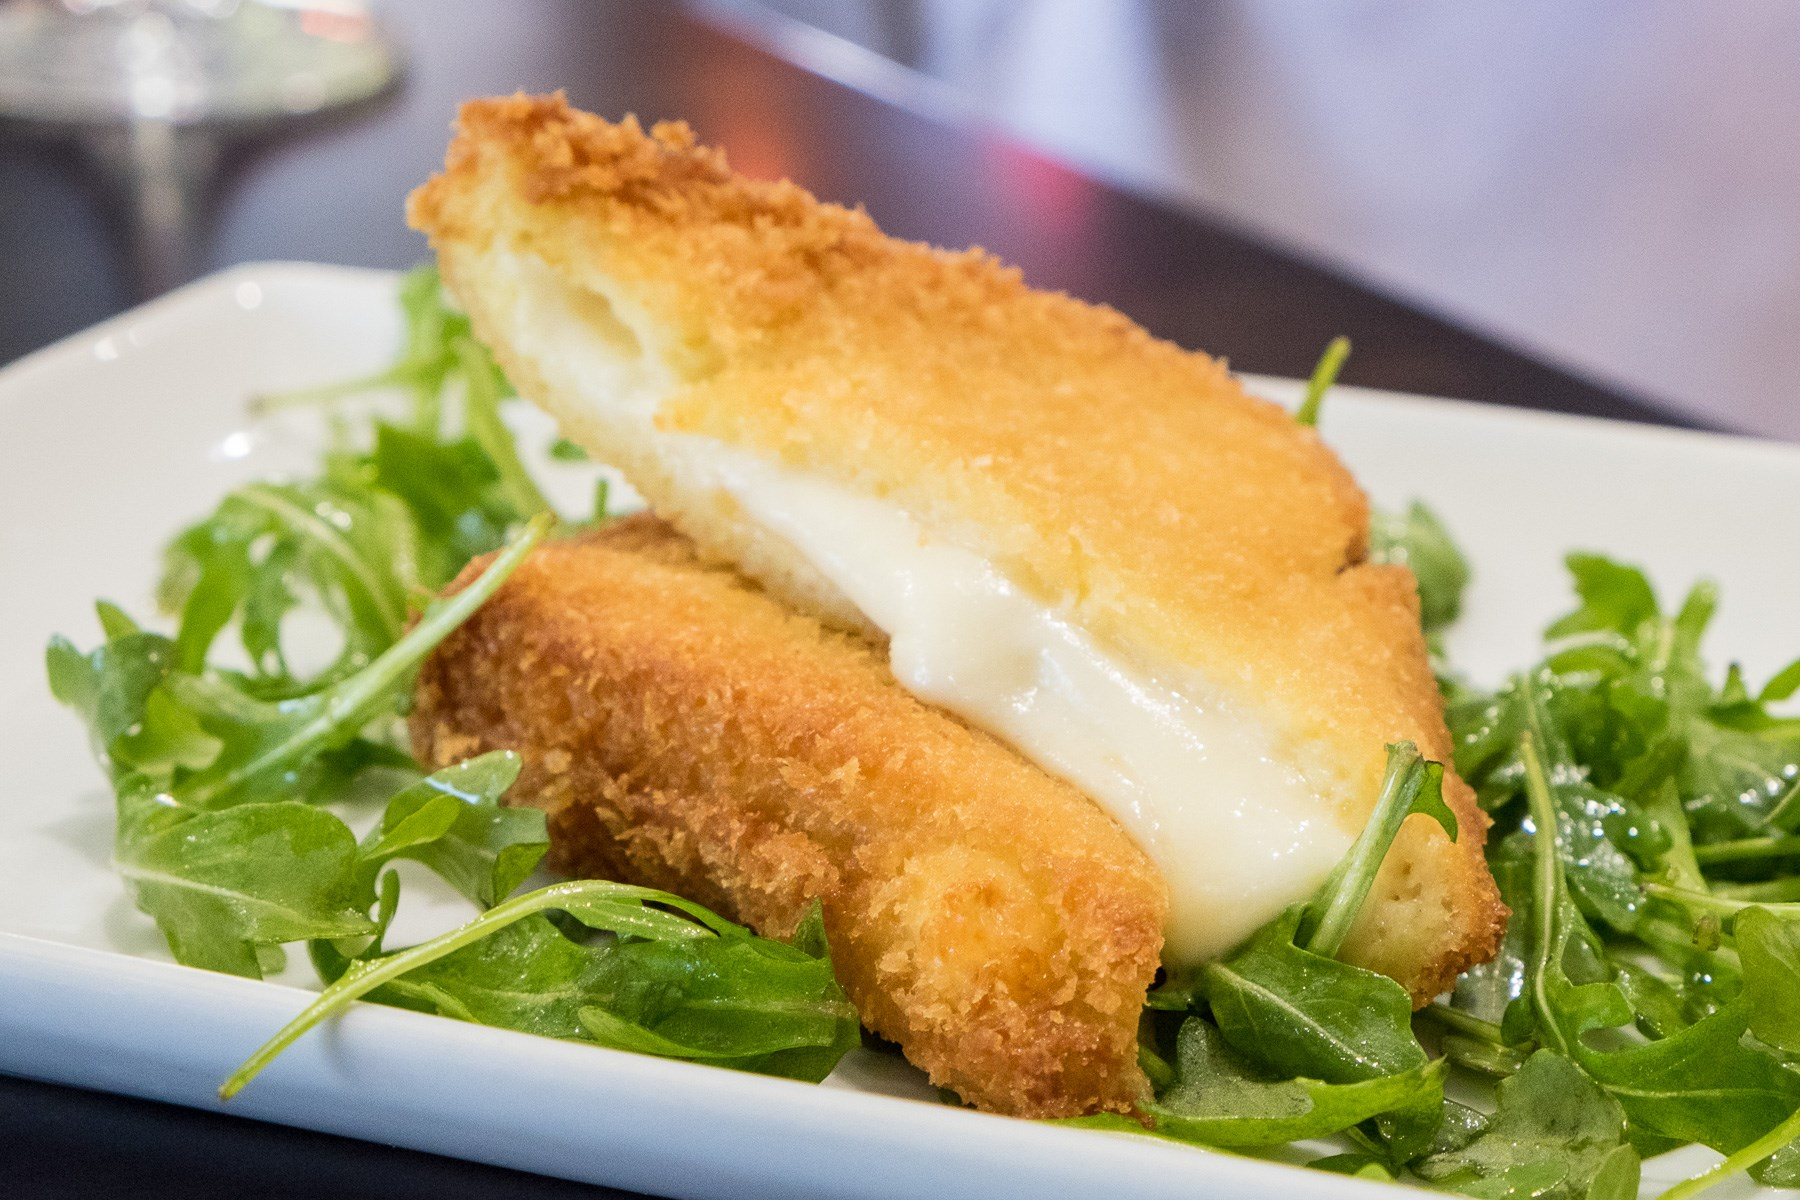 Mozzarella in Carrozza at ROMA